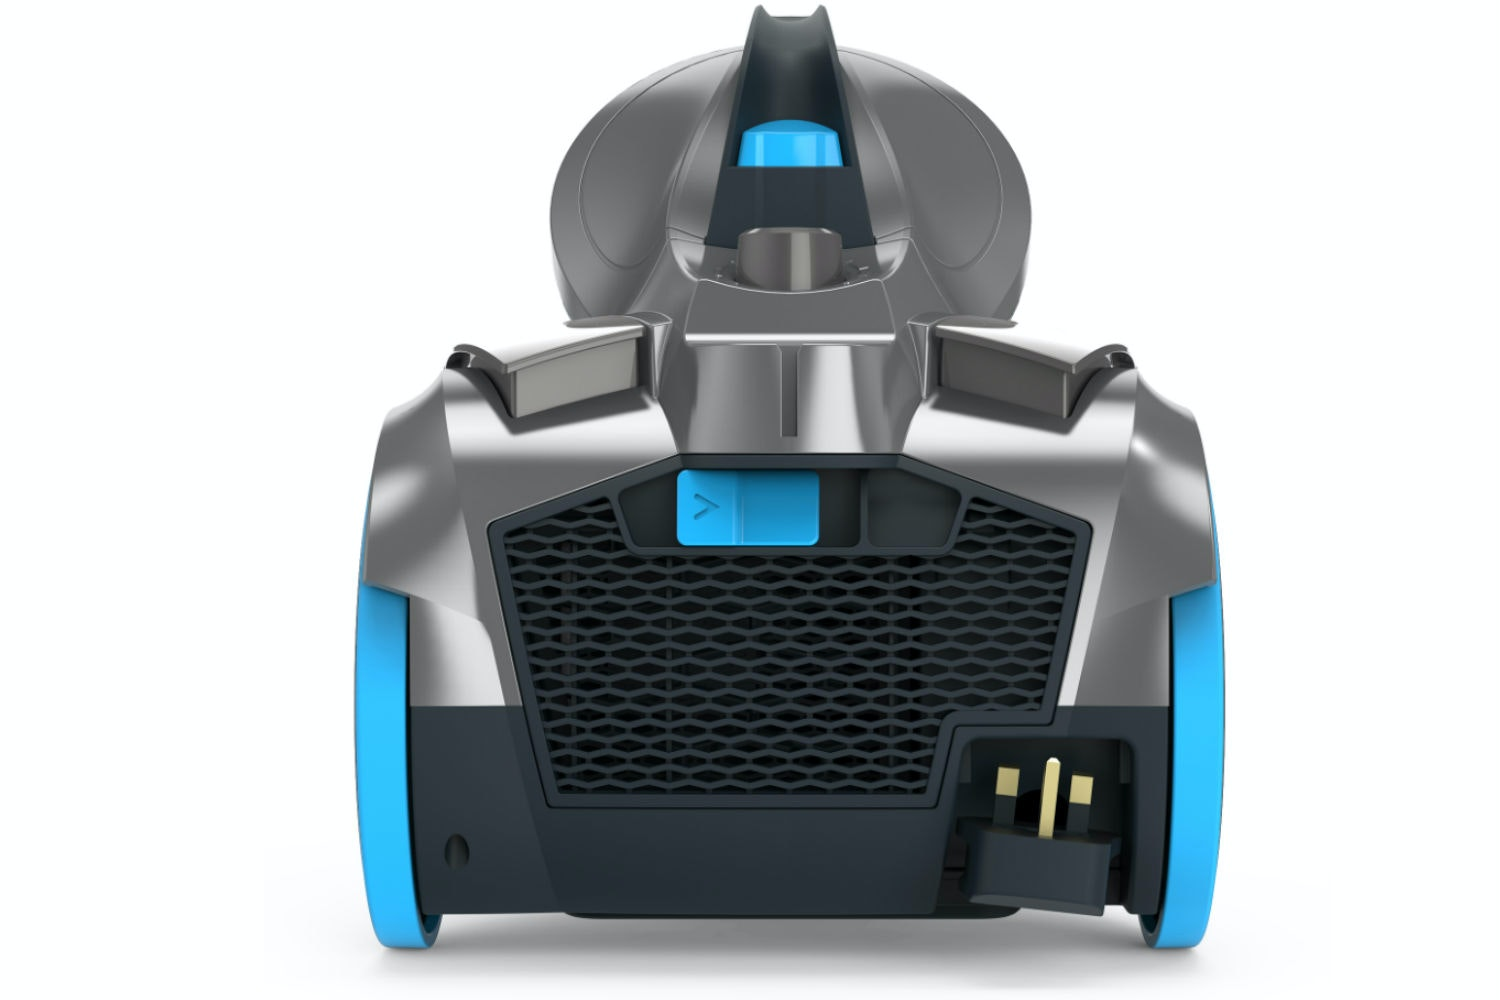 vax-power-5-cylinder-vacuum-cleaner-C85P5BE